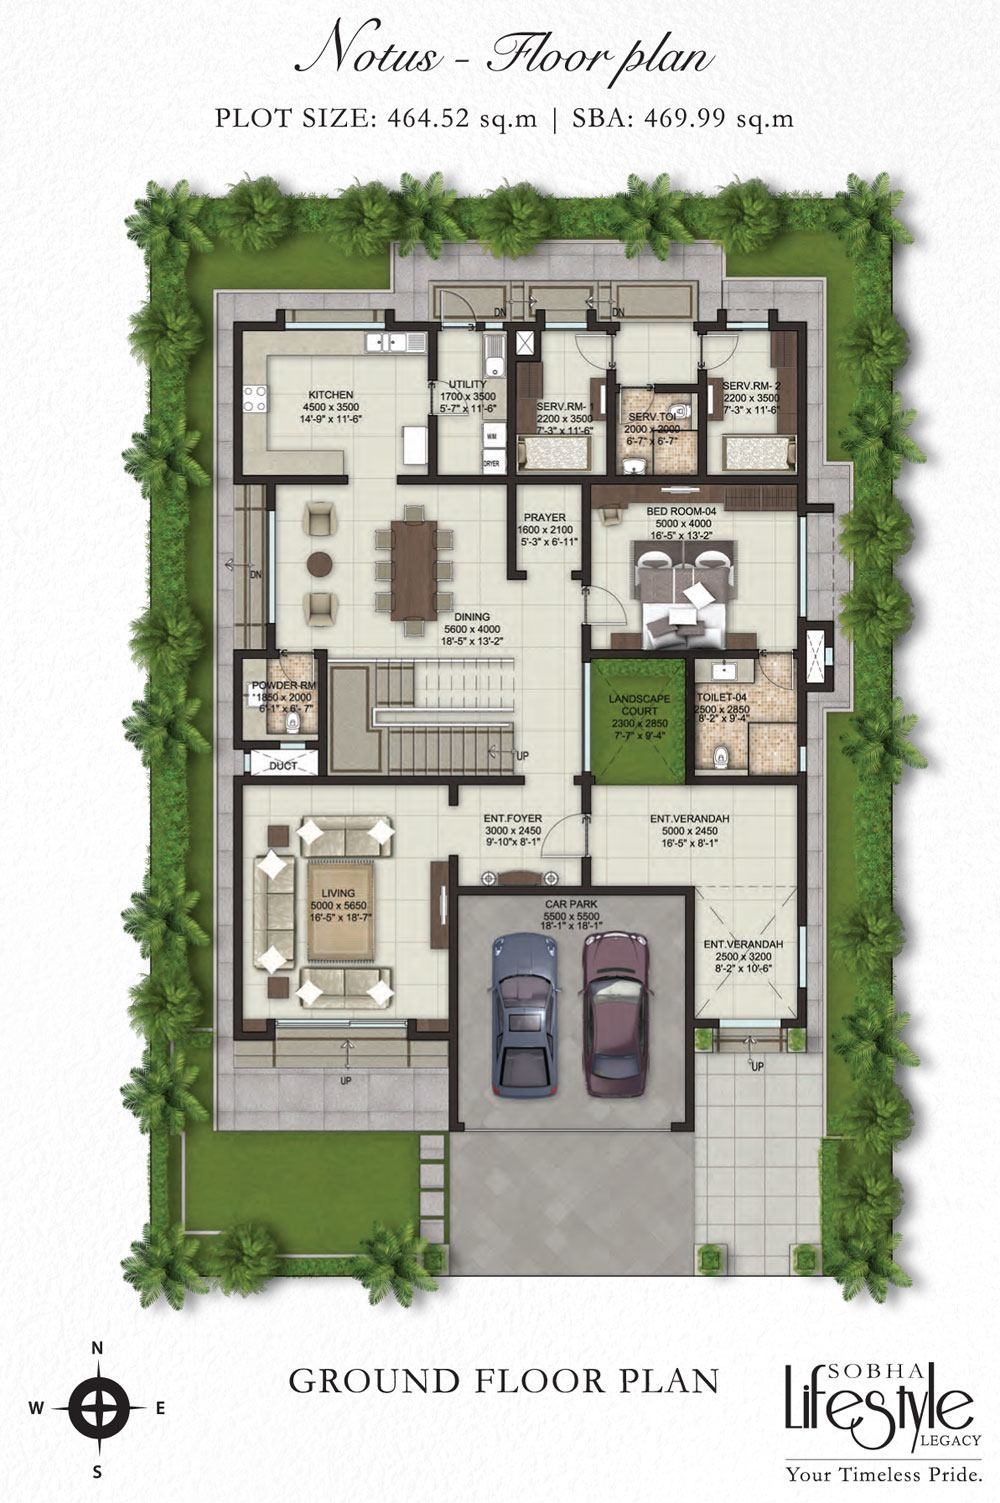 Sobha lifestyle legacy 4 bedroom villas bangalore Plans for villas